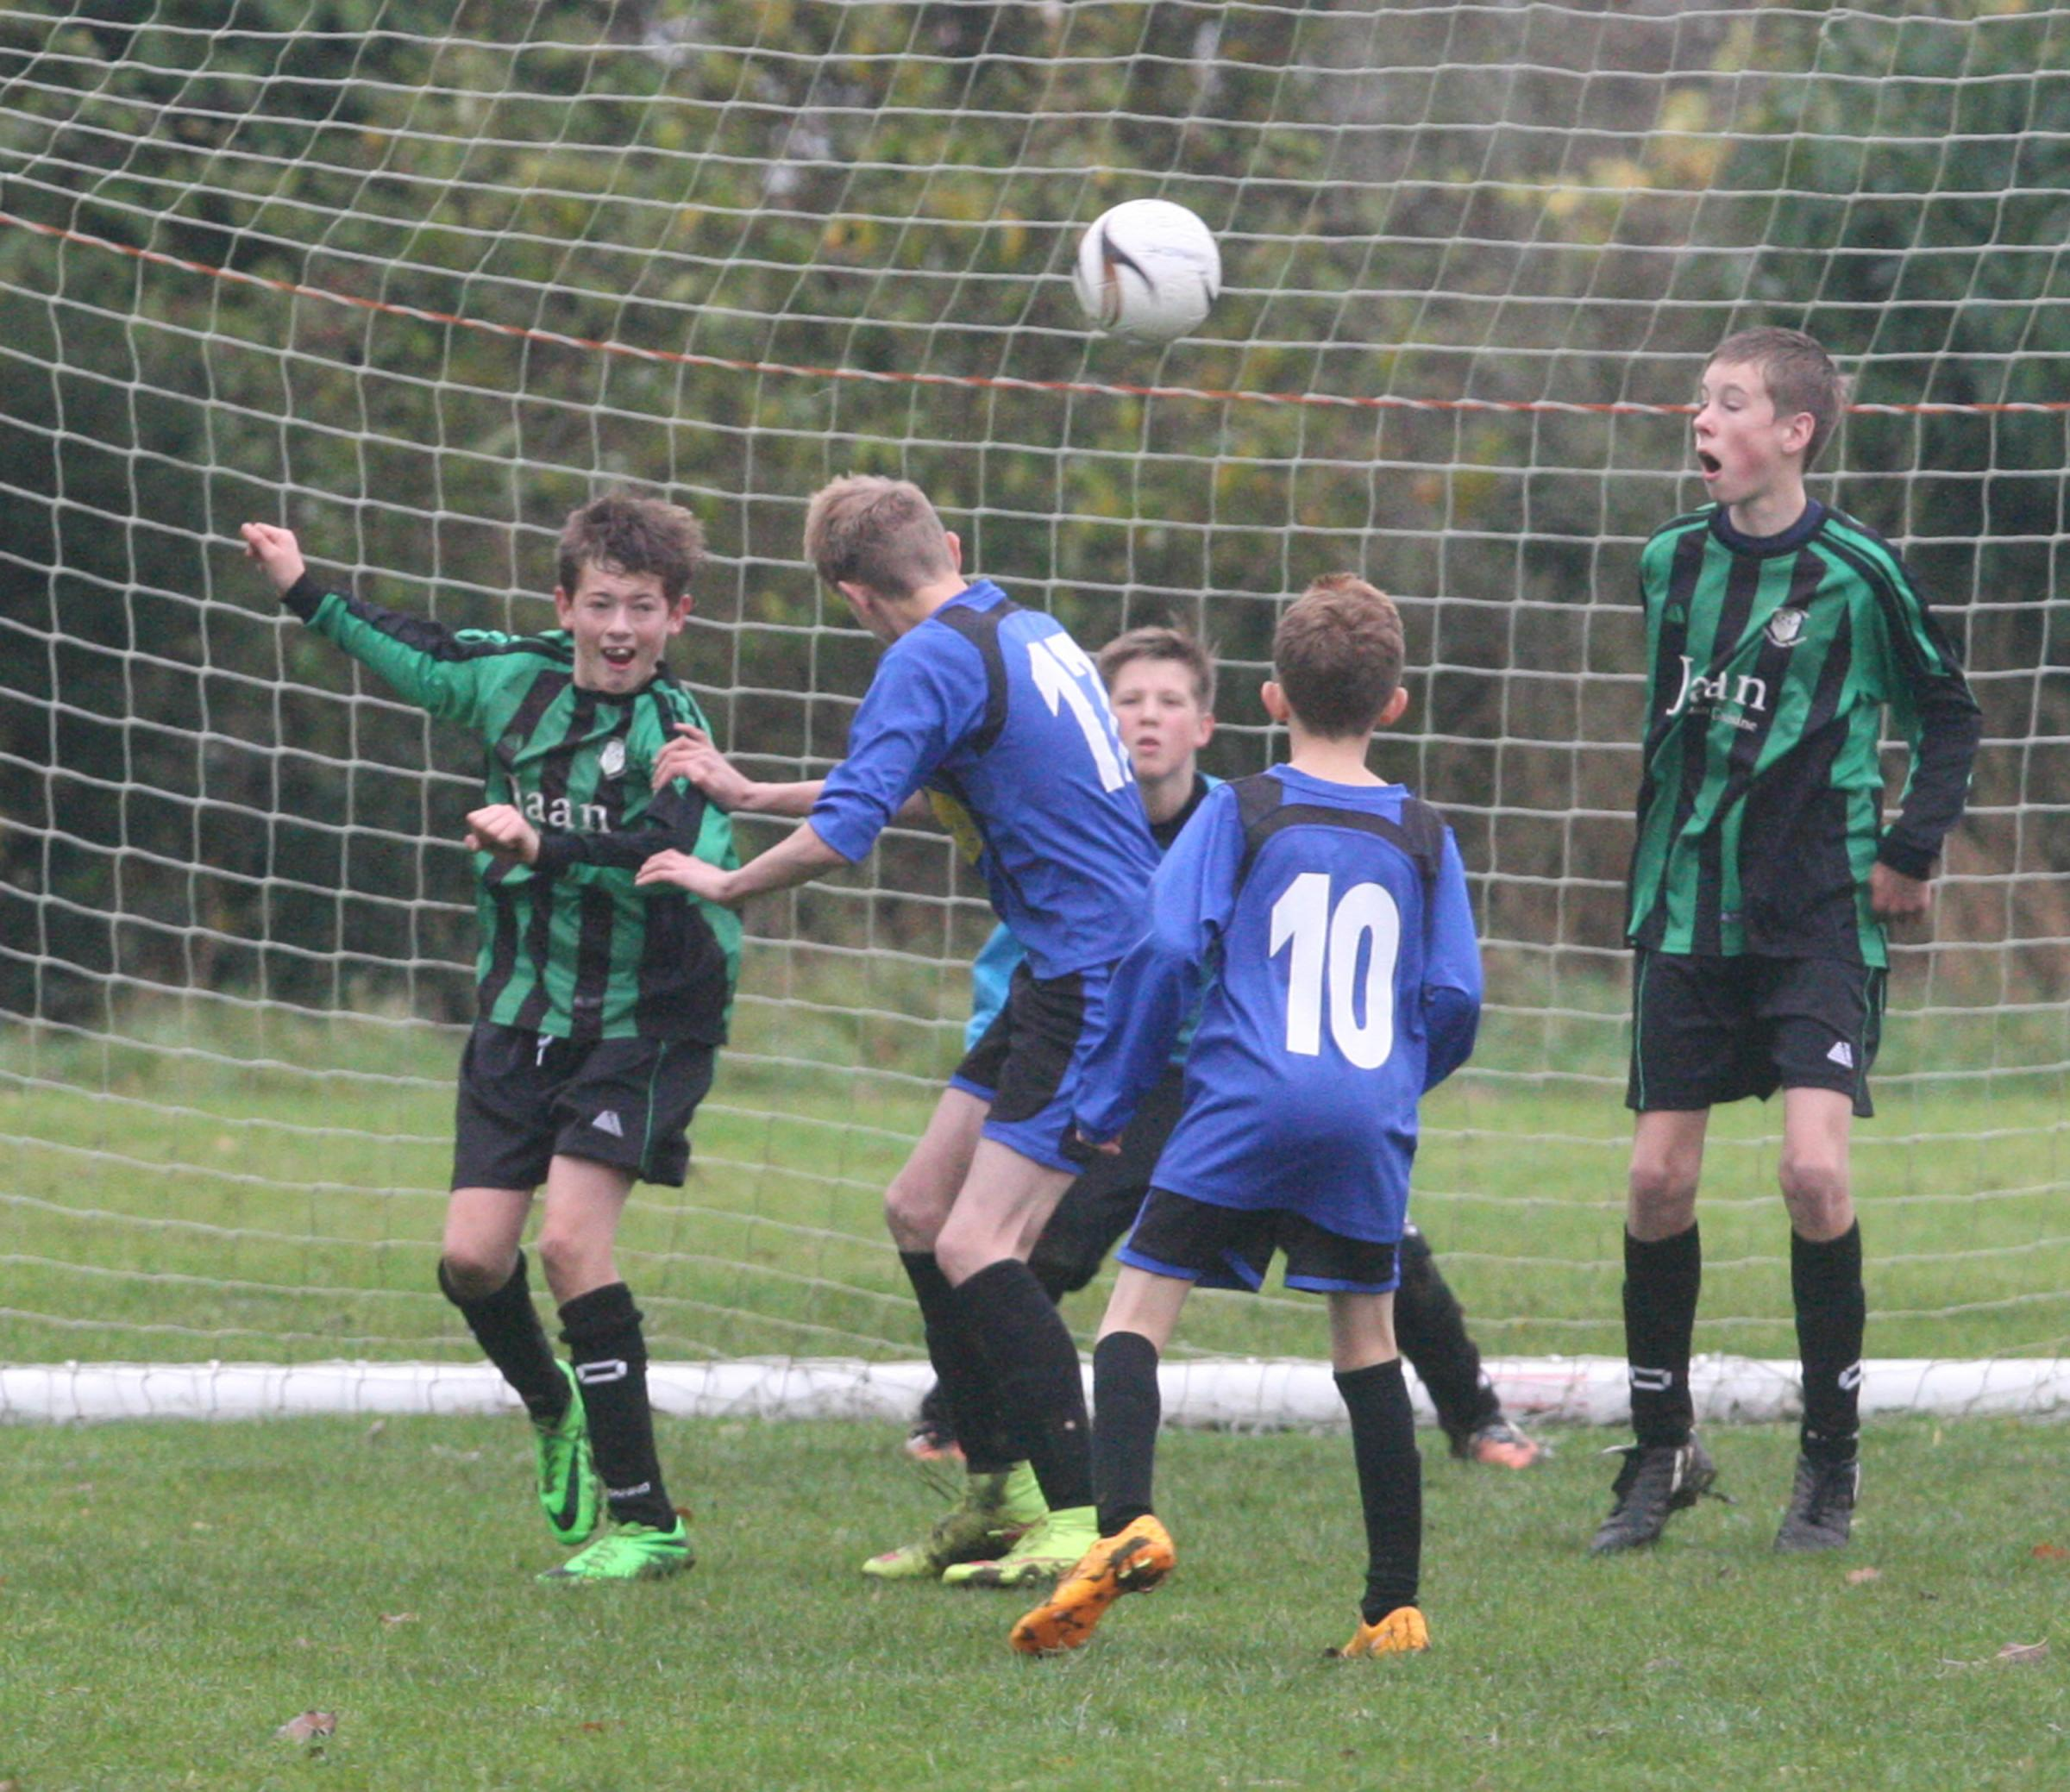 Cumnor's Matthew Davies (No 17) goes close to scoring with a header in his team's exciting 4-3 win over Combe in the Under 13 B League